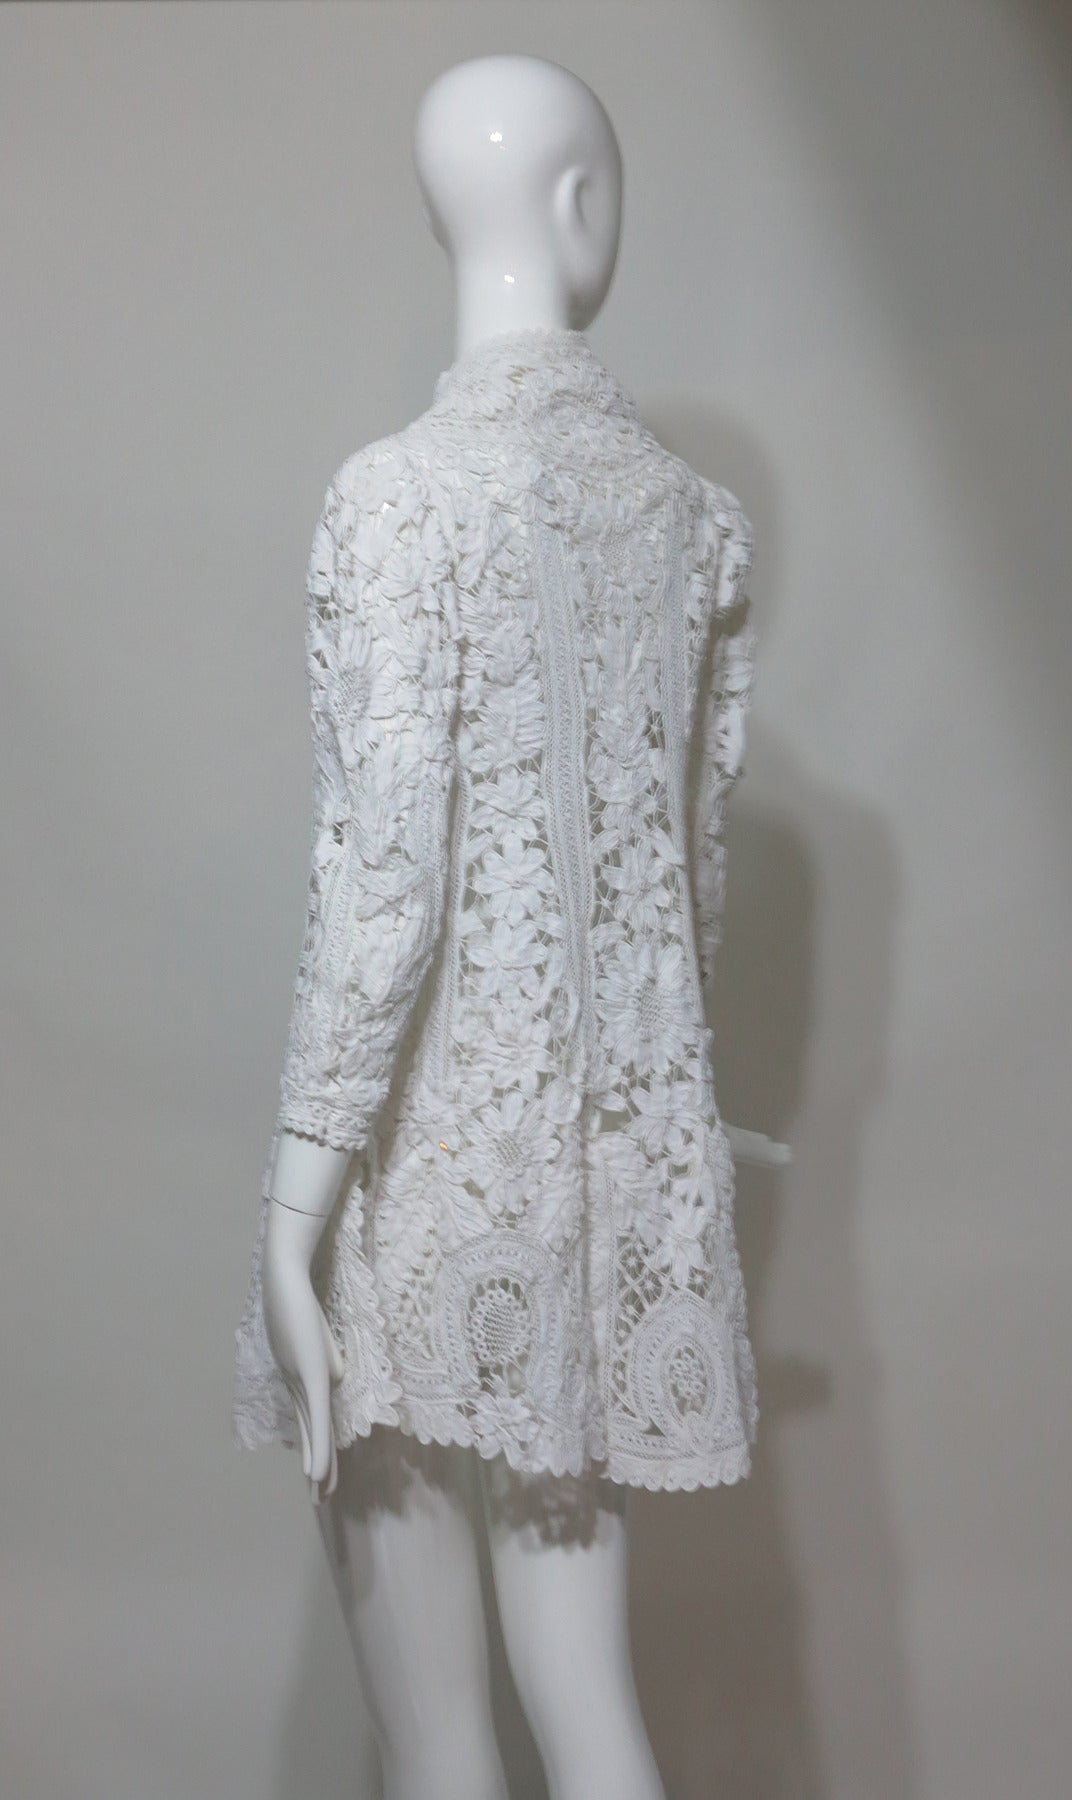 Battenburg white tape lace coat handmade Victorian In Excellent Condition For Sale In West Palm Beach, FL